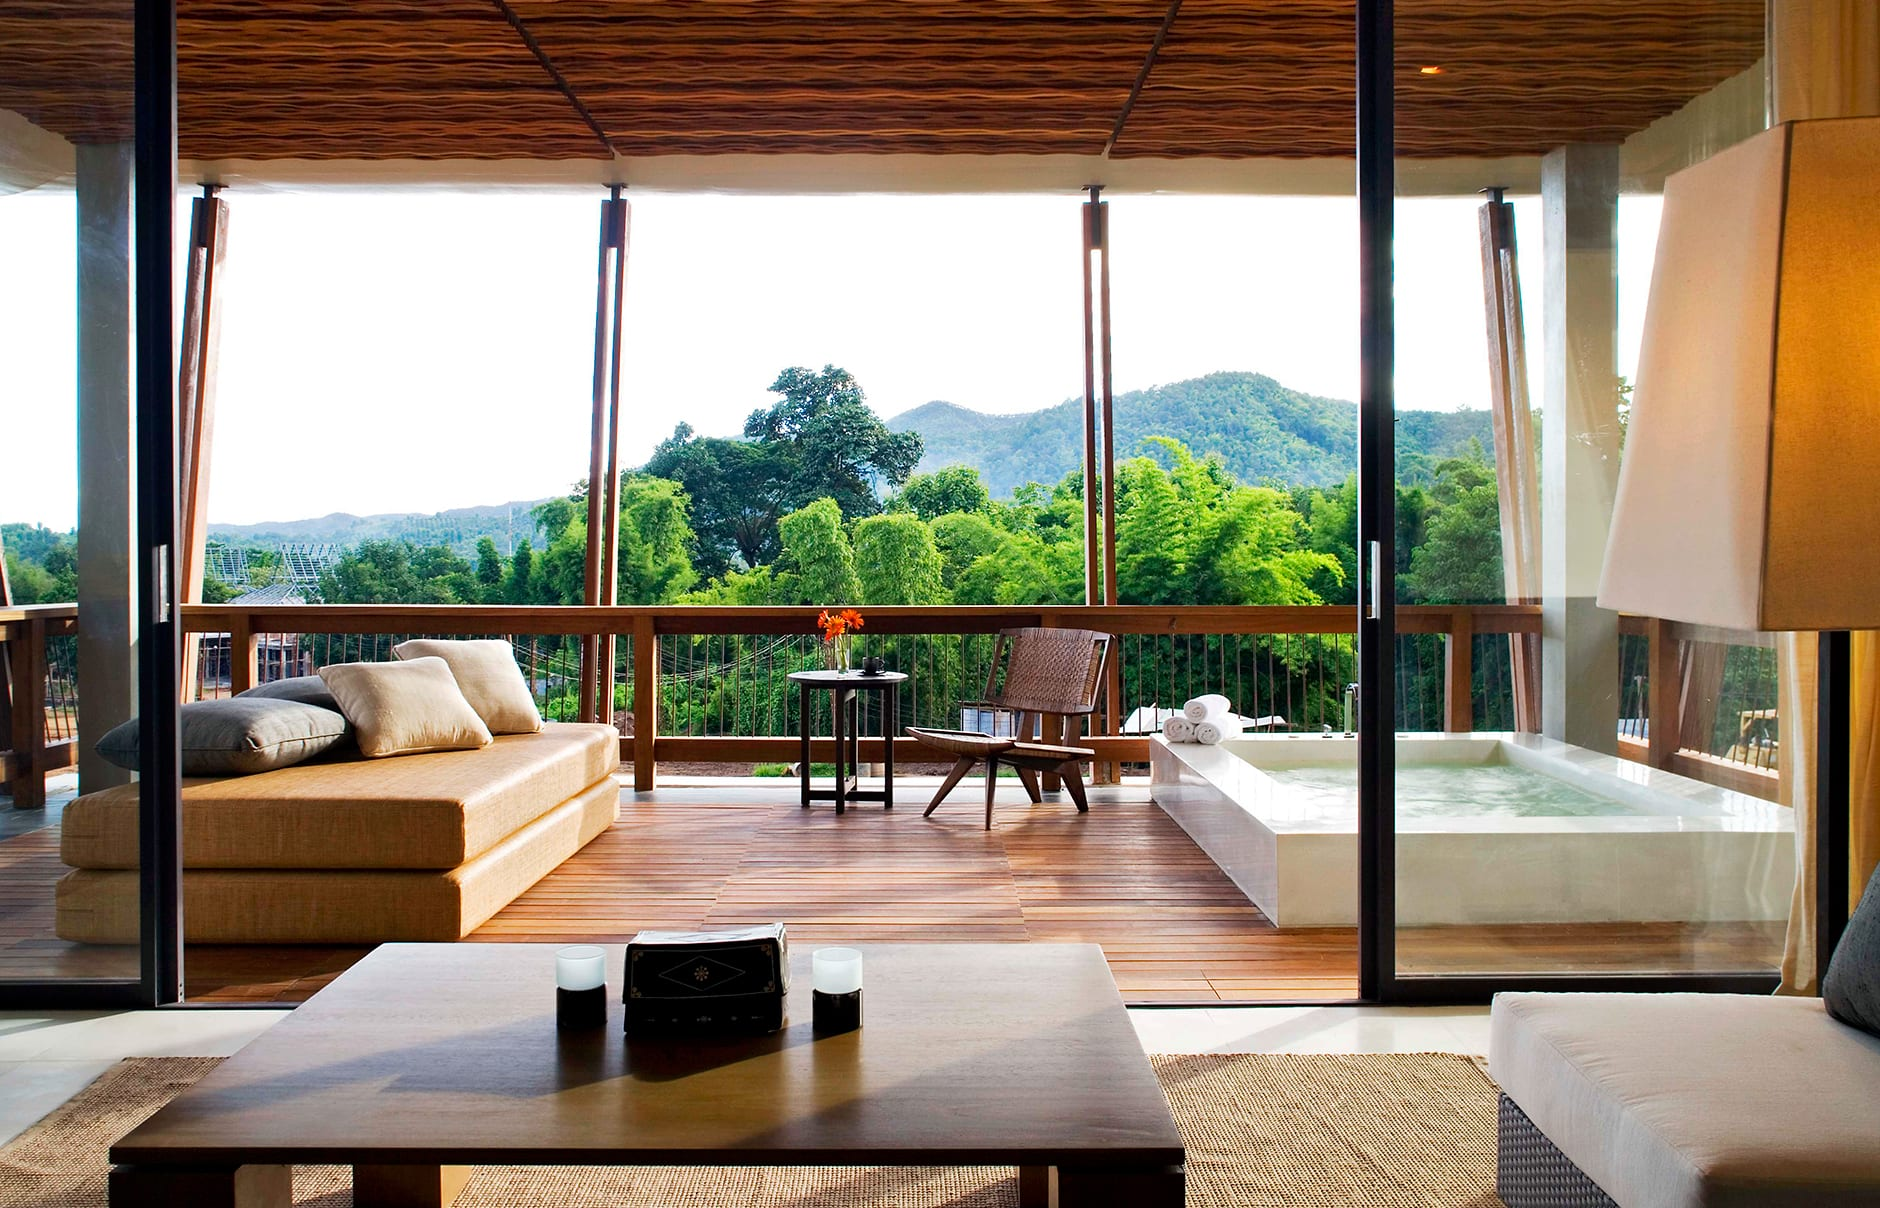 Jacuzzi Pavilion. Veranda High Resort Chiang Mai, Thailand. Hotel Review by TravelPlusStyle. Photo © AccorHotels